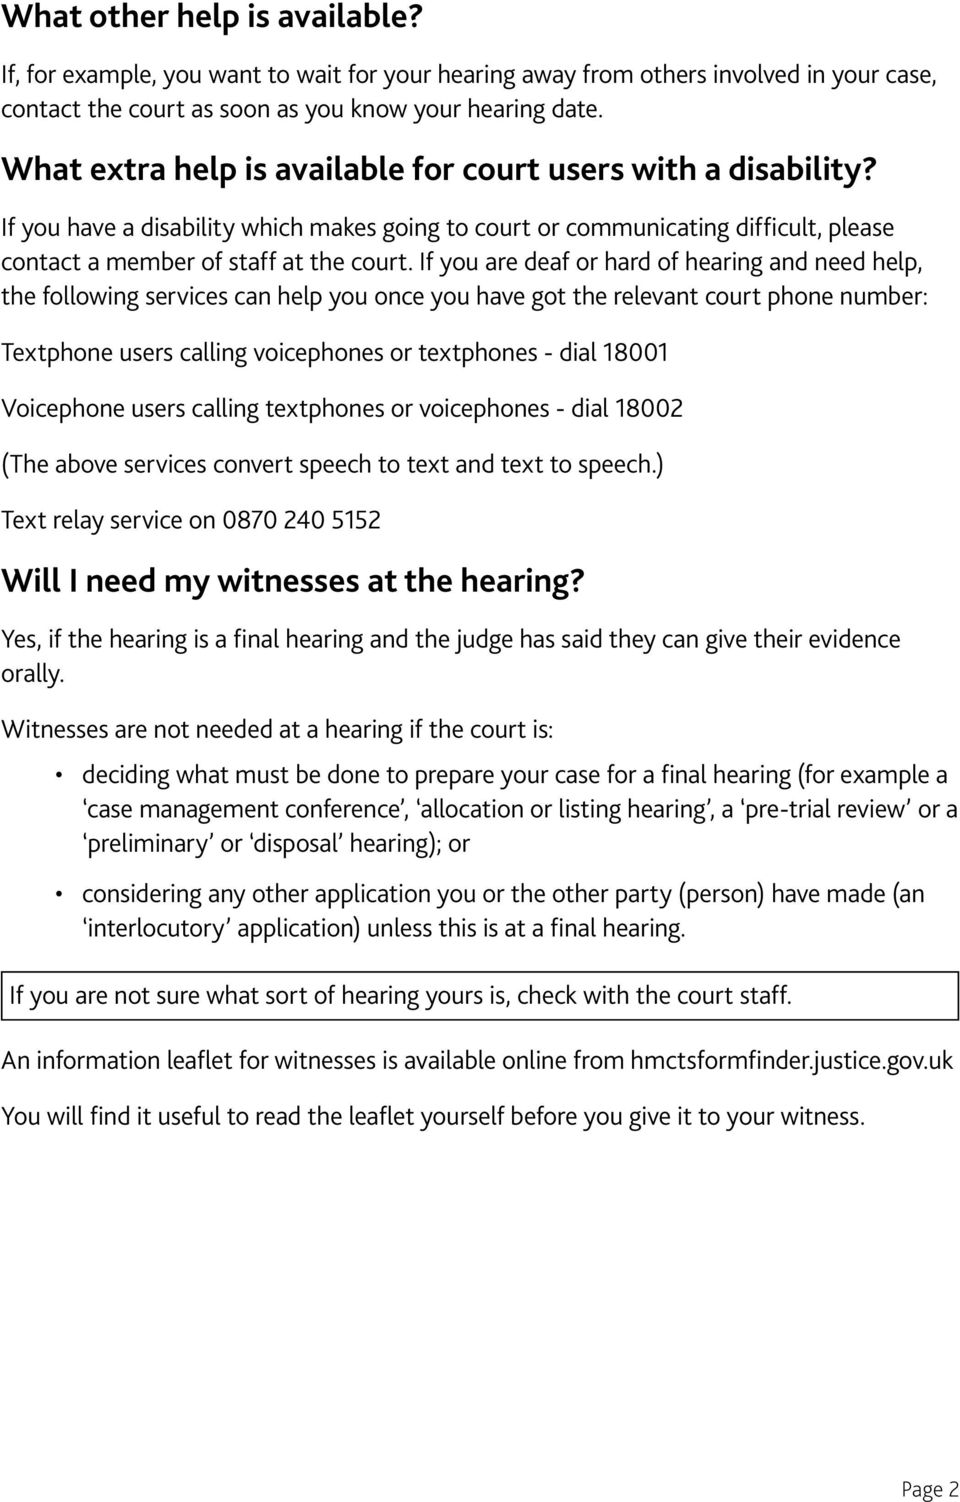 If you are deaf or hard of hearing and need help, the following services can help you once you have got the relevant court phone number: Textphone users calling voicephones or textphones - dial 18001